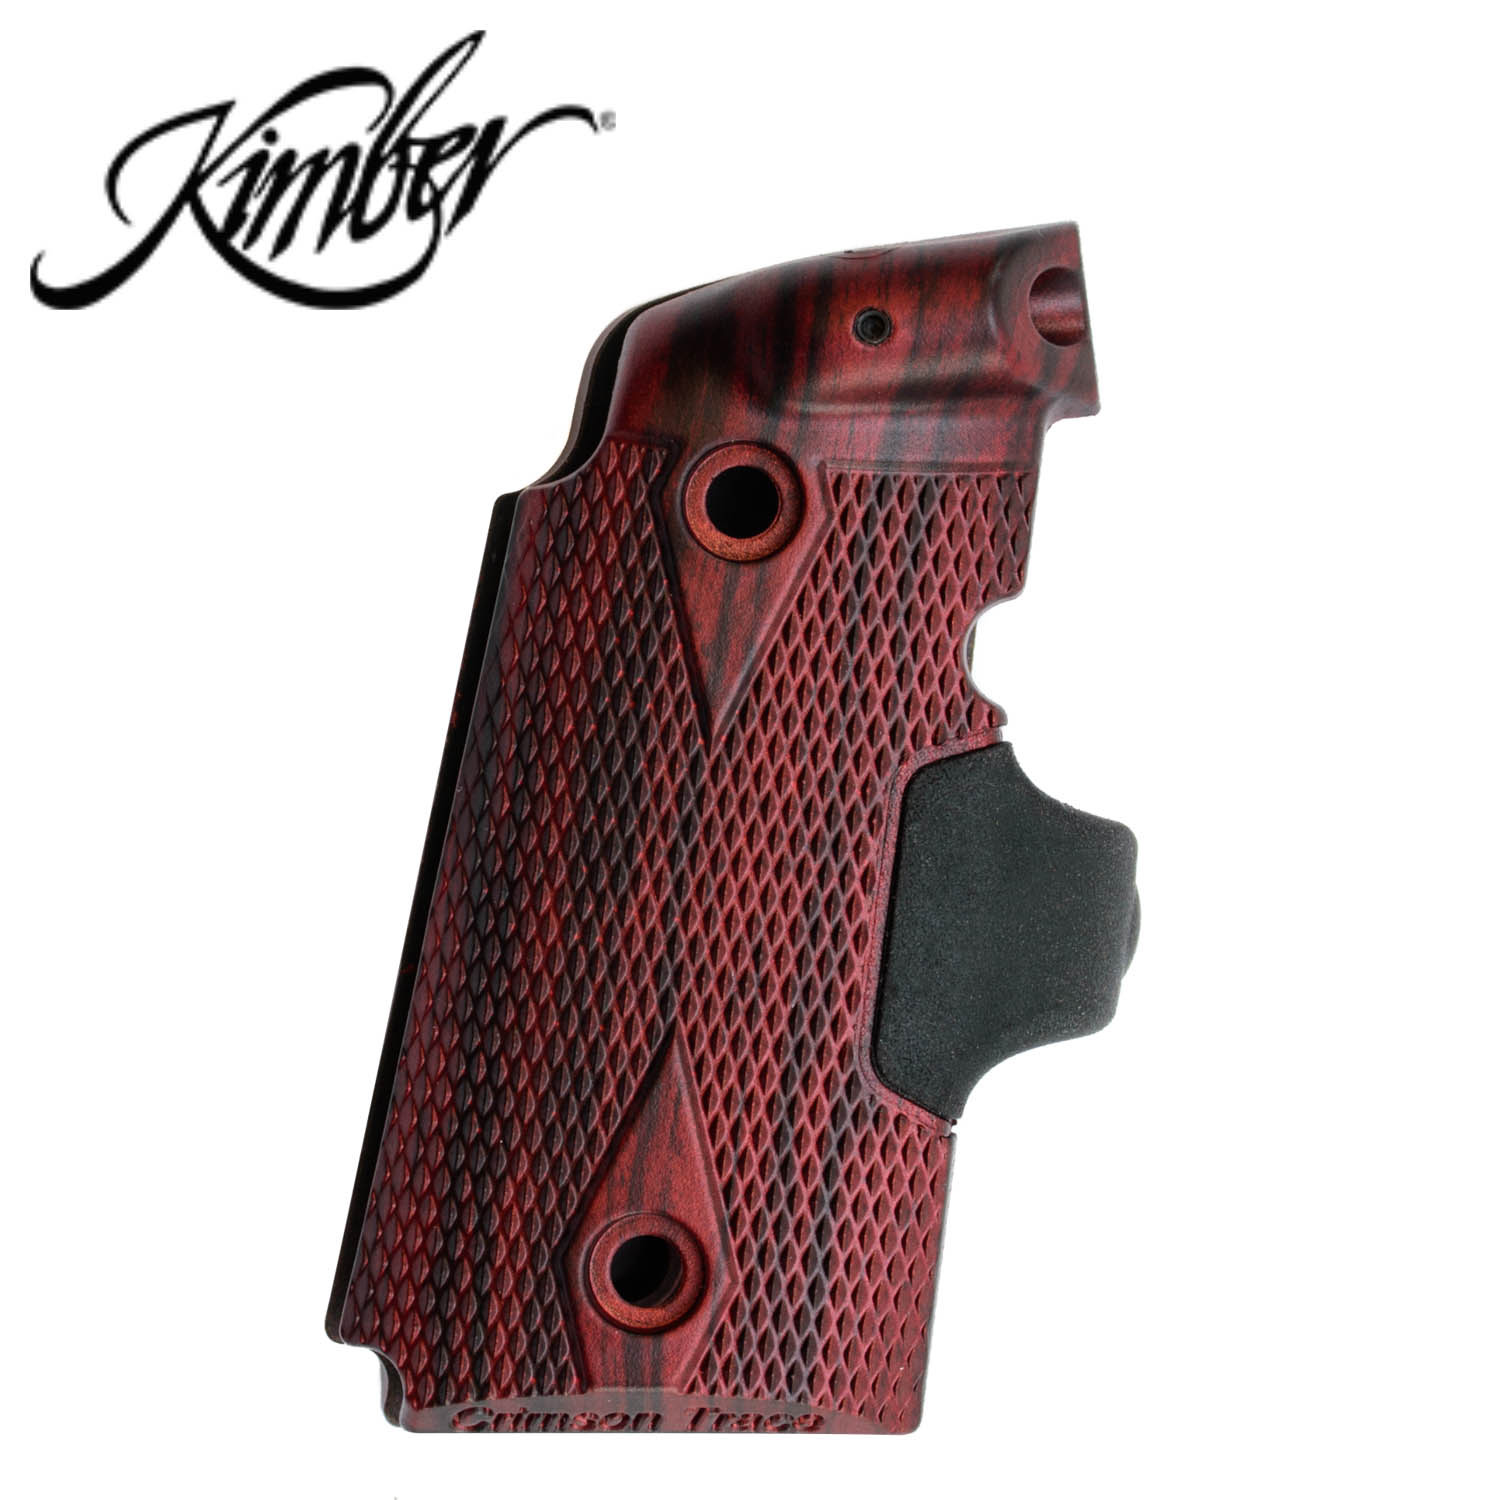 Kimber Micro 9 Crimson Trace Red Laser Grips, Rosewood: Midwest Gun Works